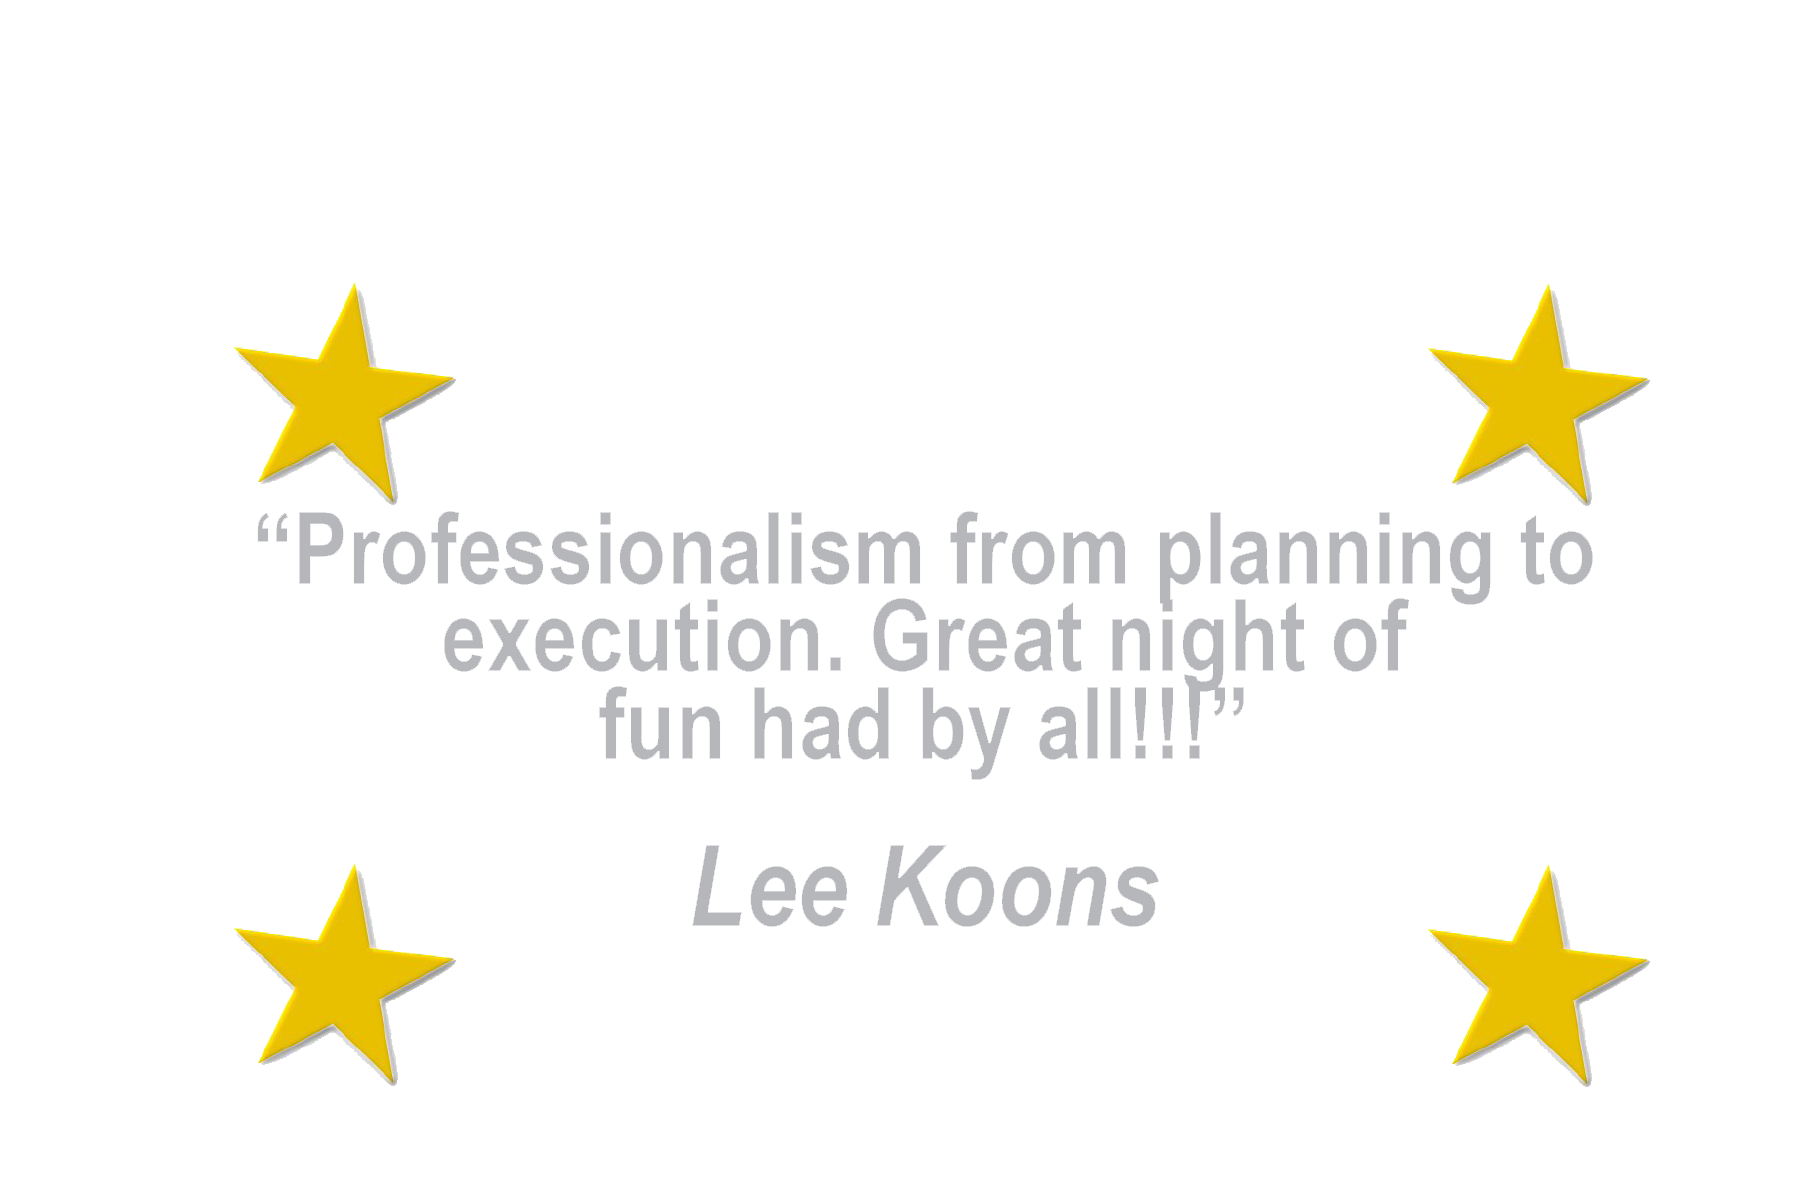 4 - Star Quotes CCs - Lee Koons